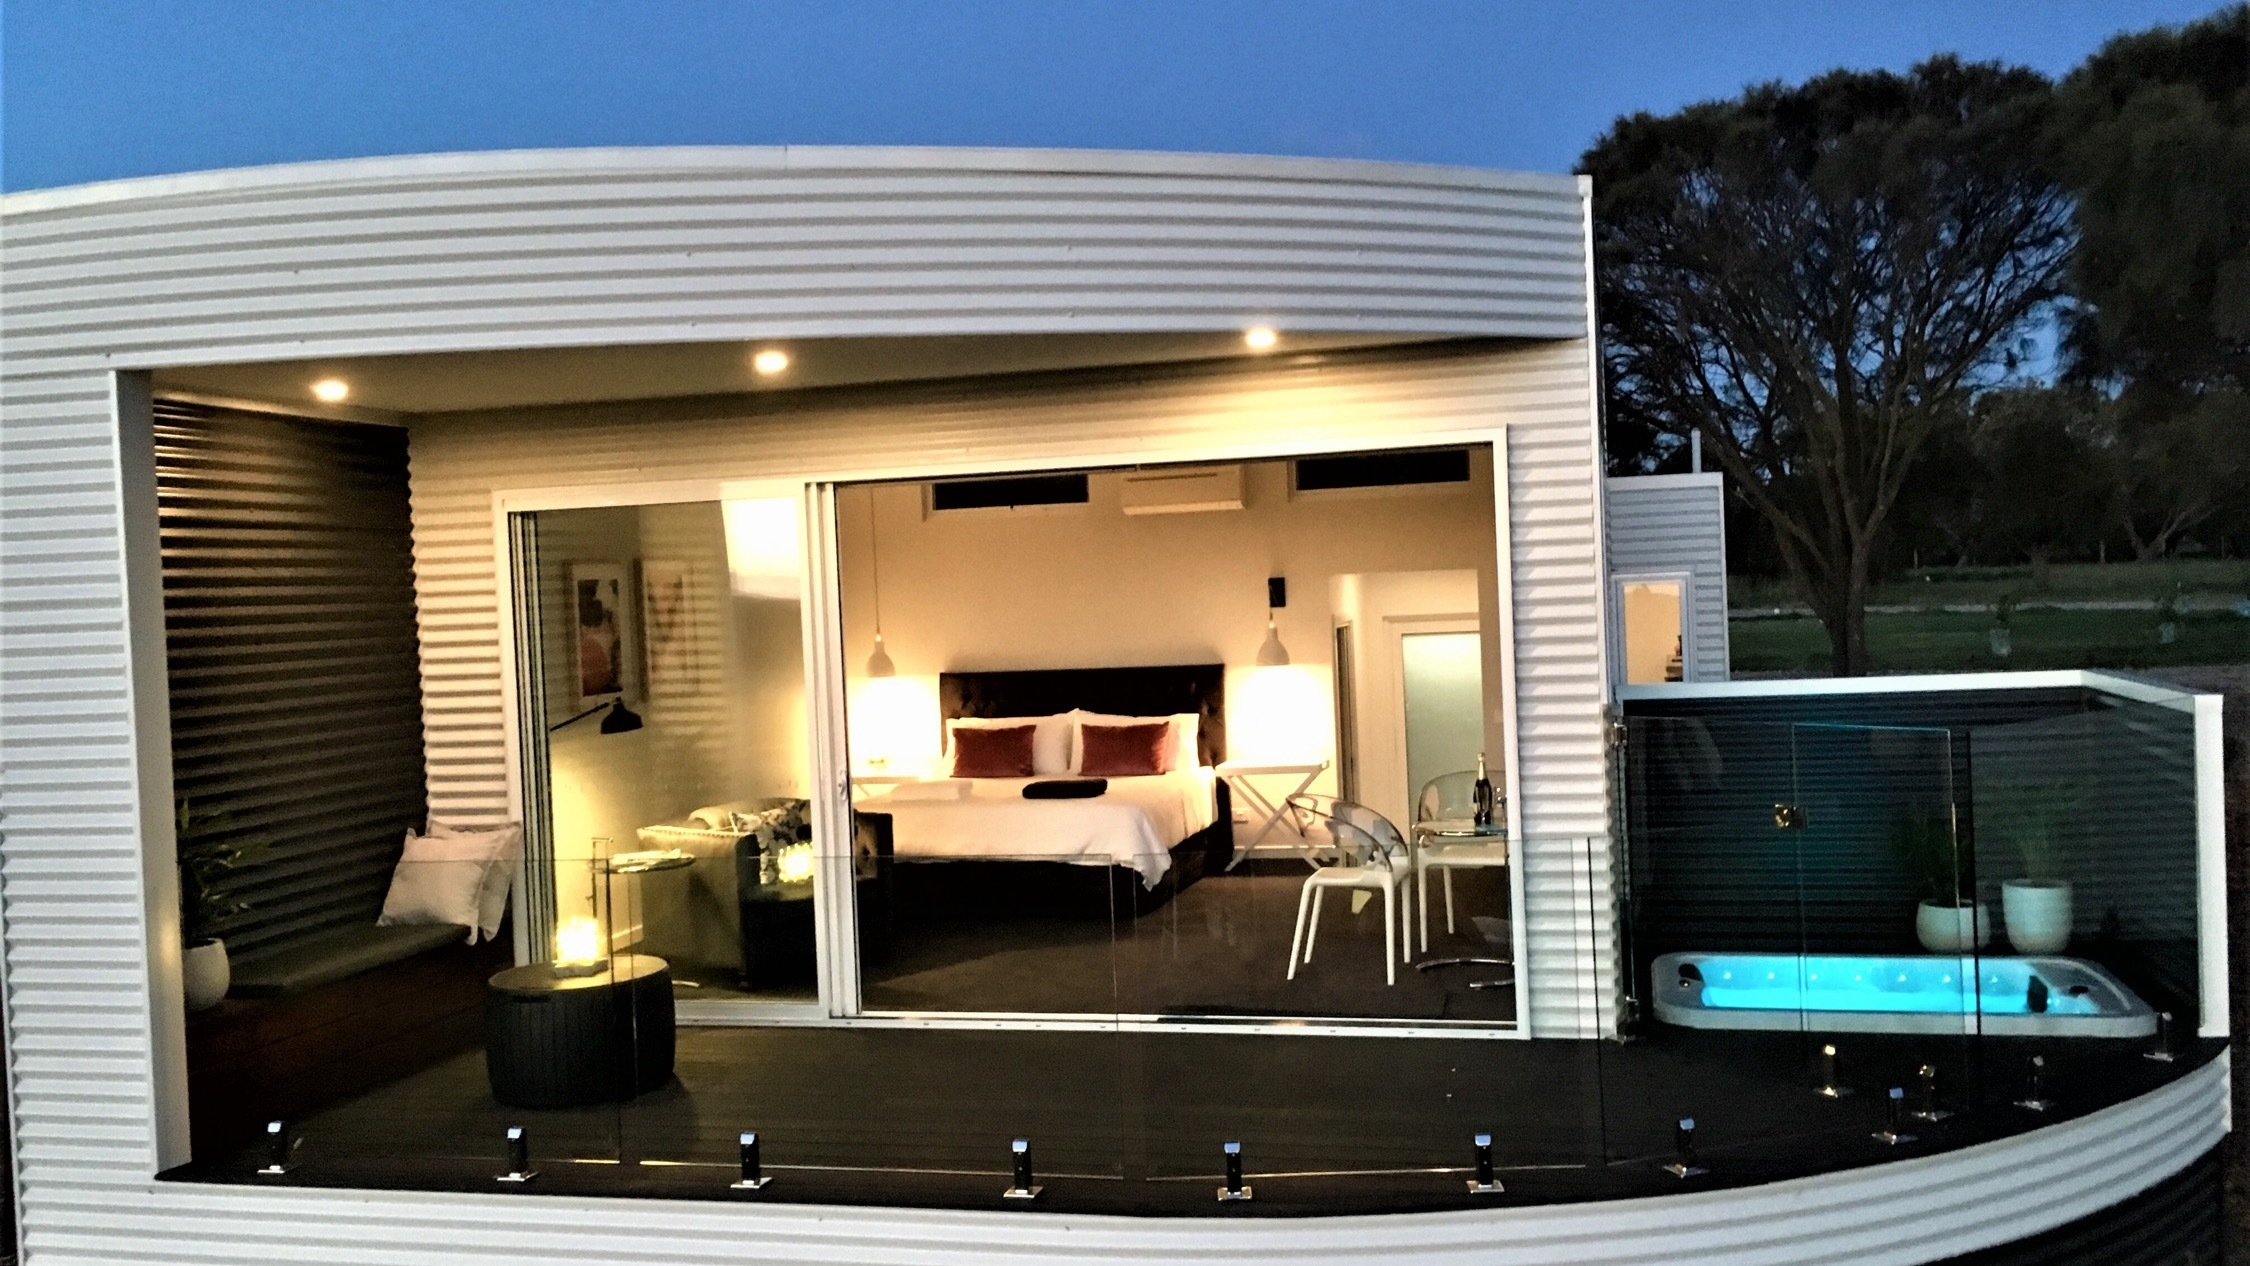 Exterior shot of the Nest Point Lonsdale